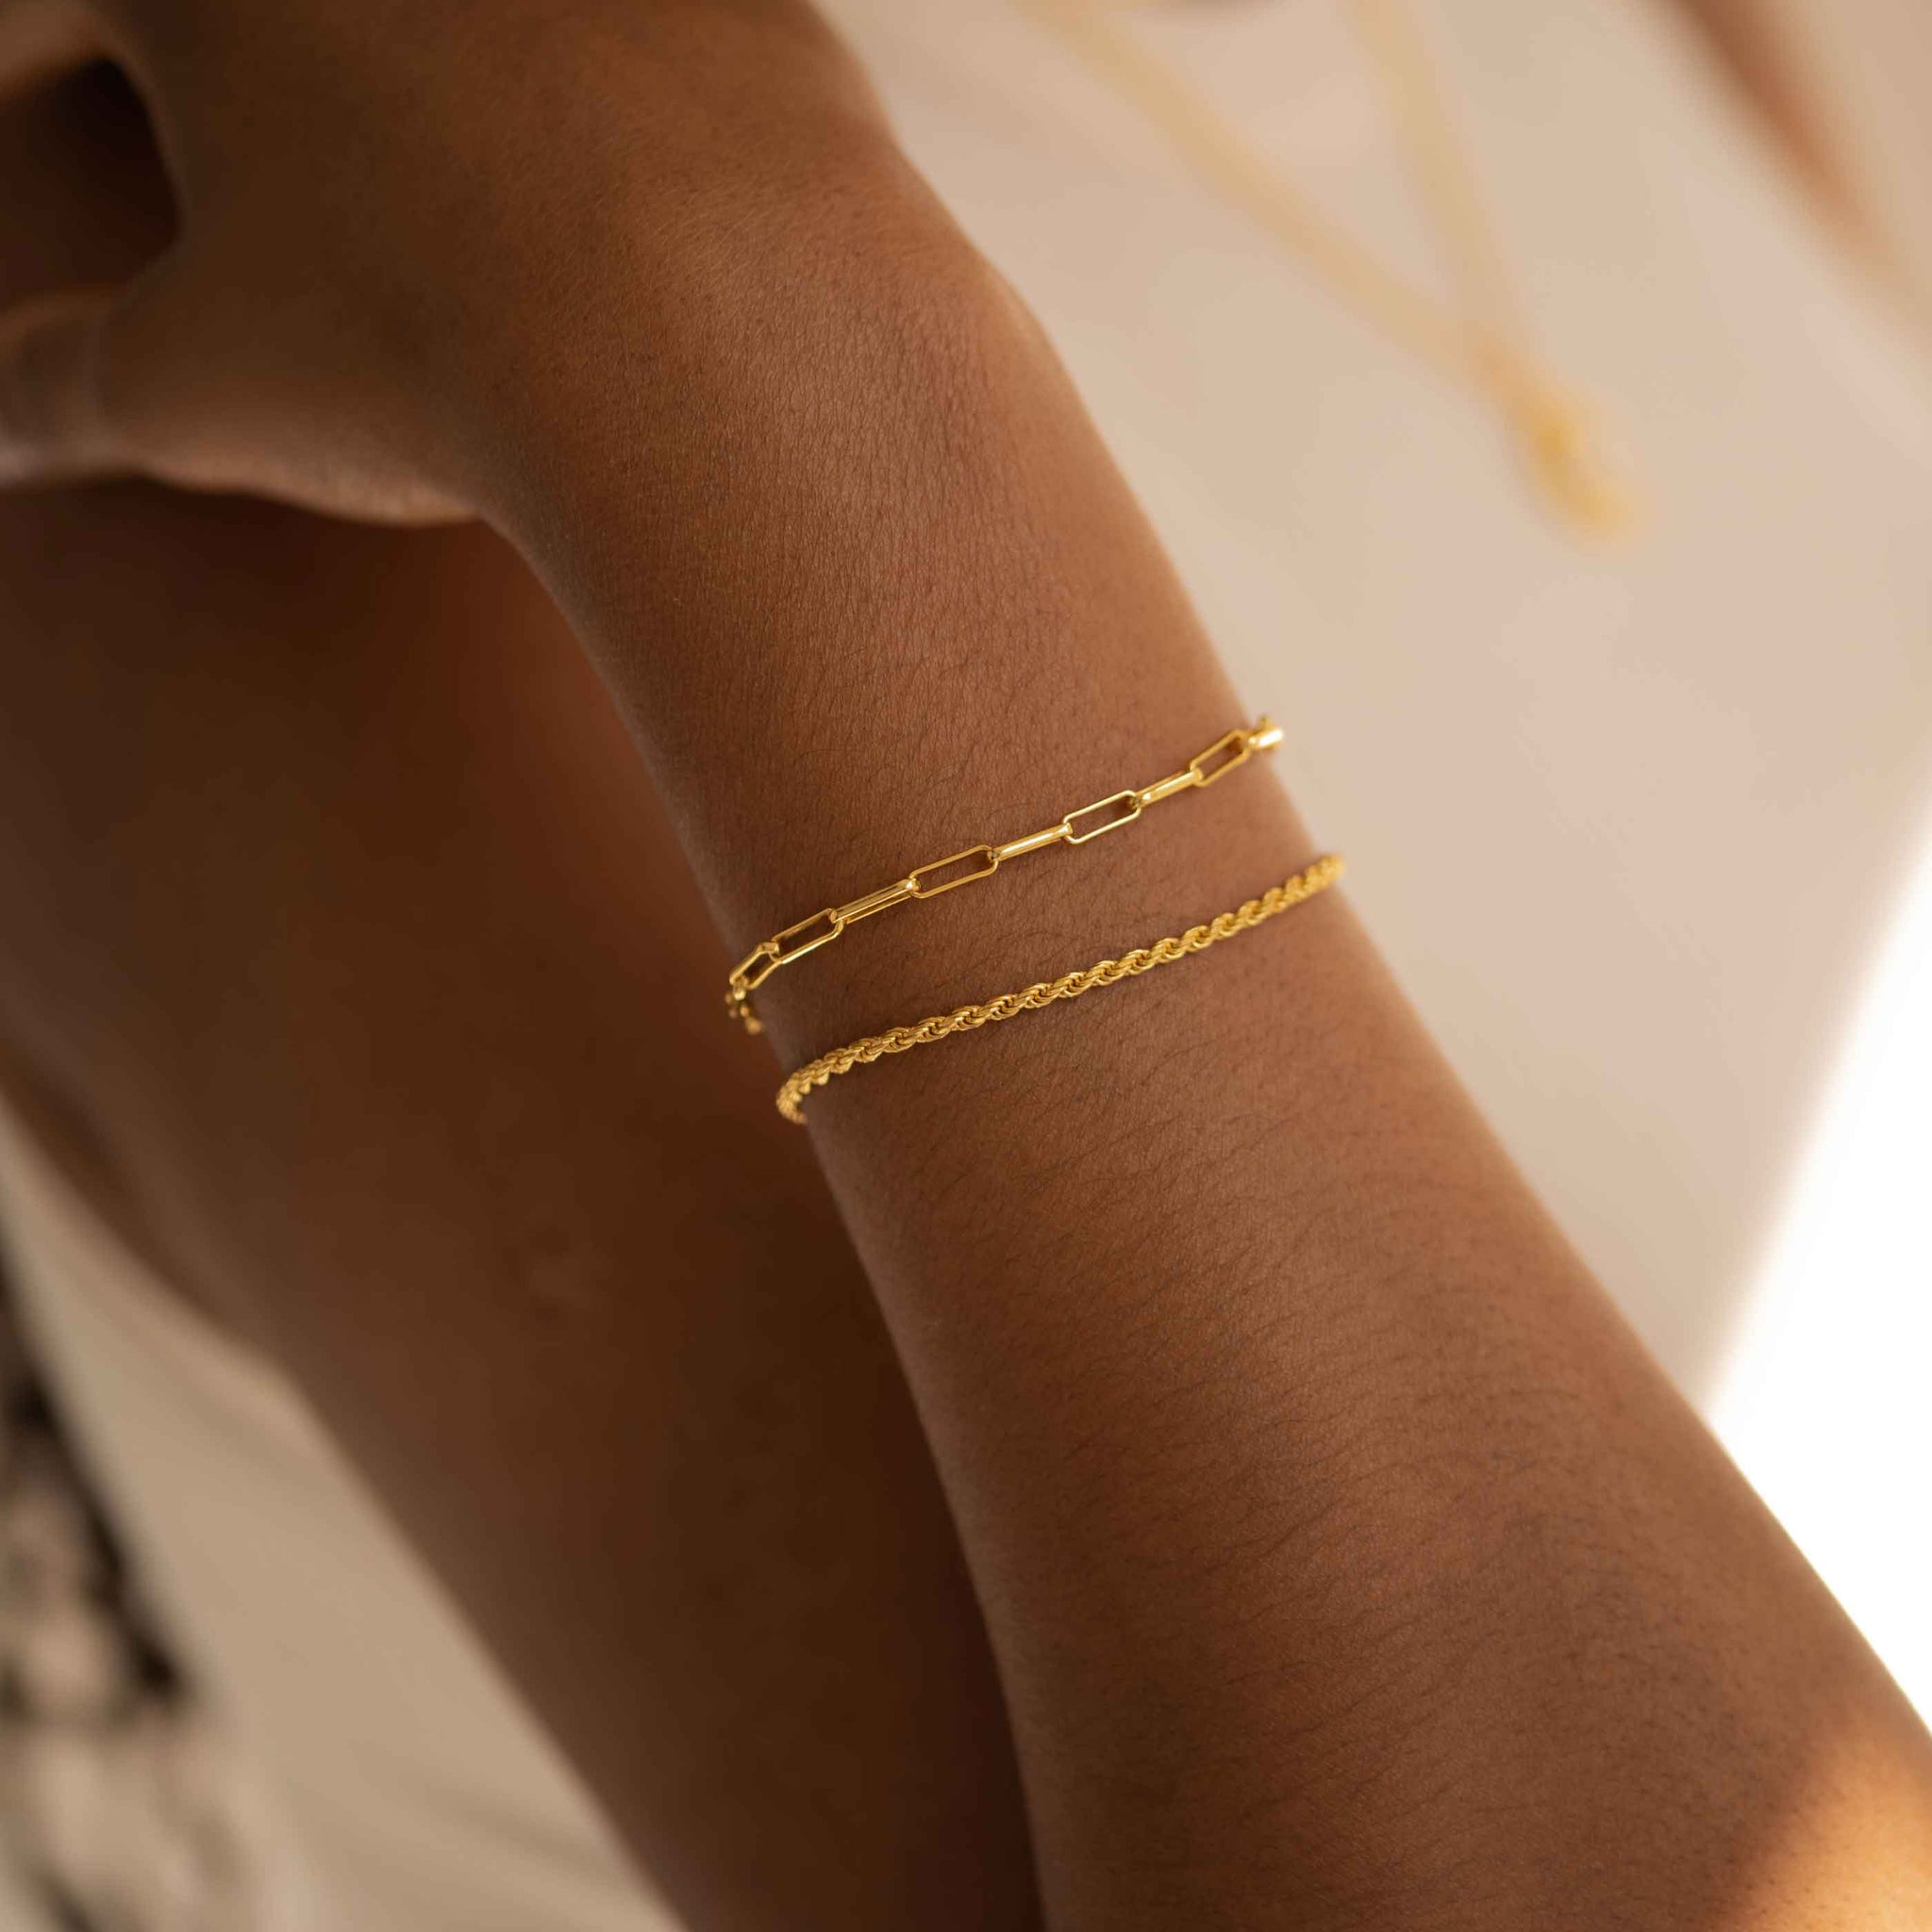 Long Link Chain Bracelet in Gold worn with rope chain bracelet